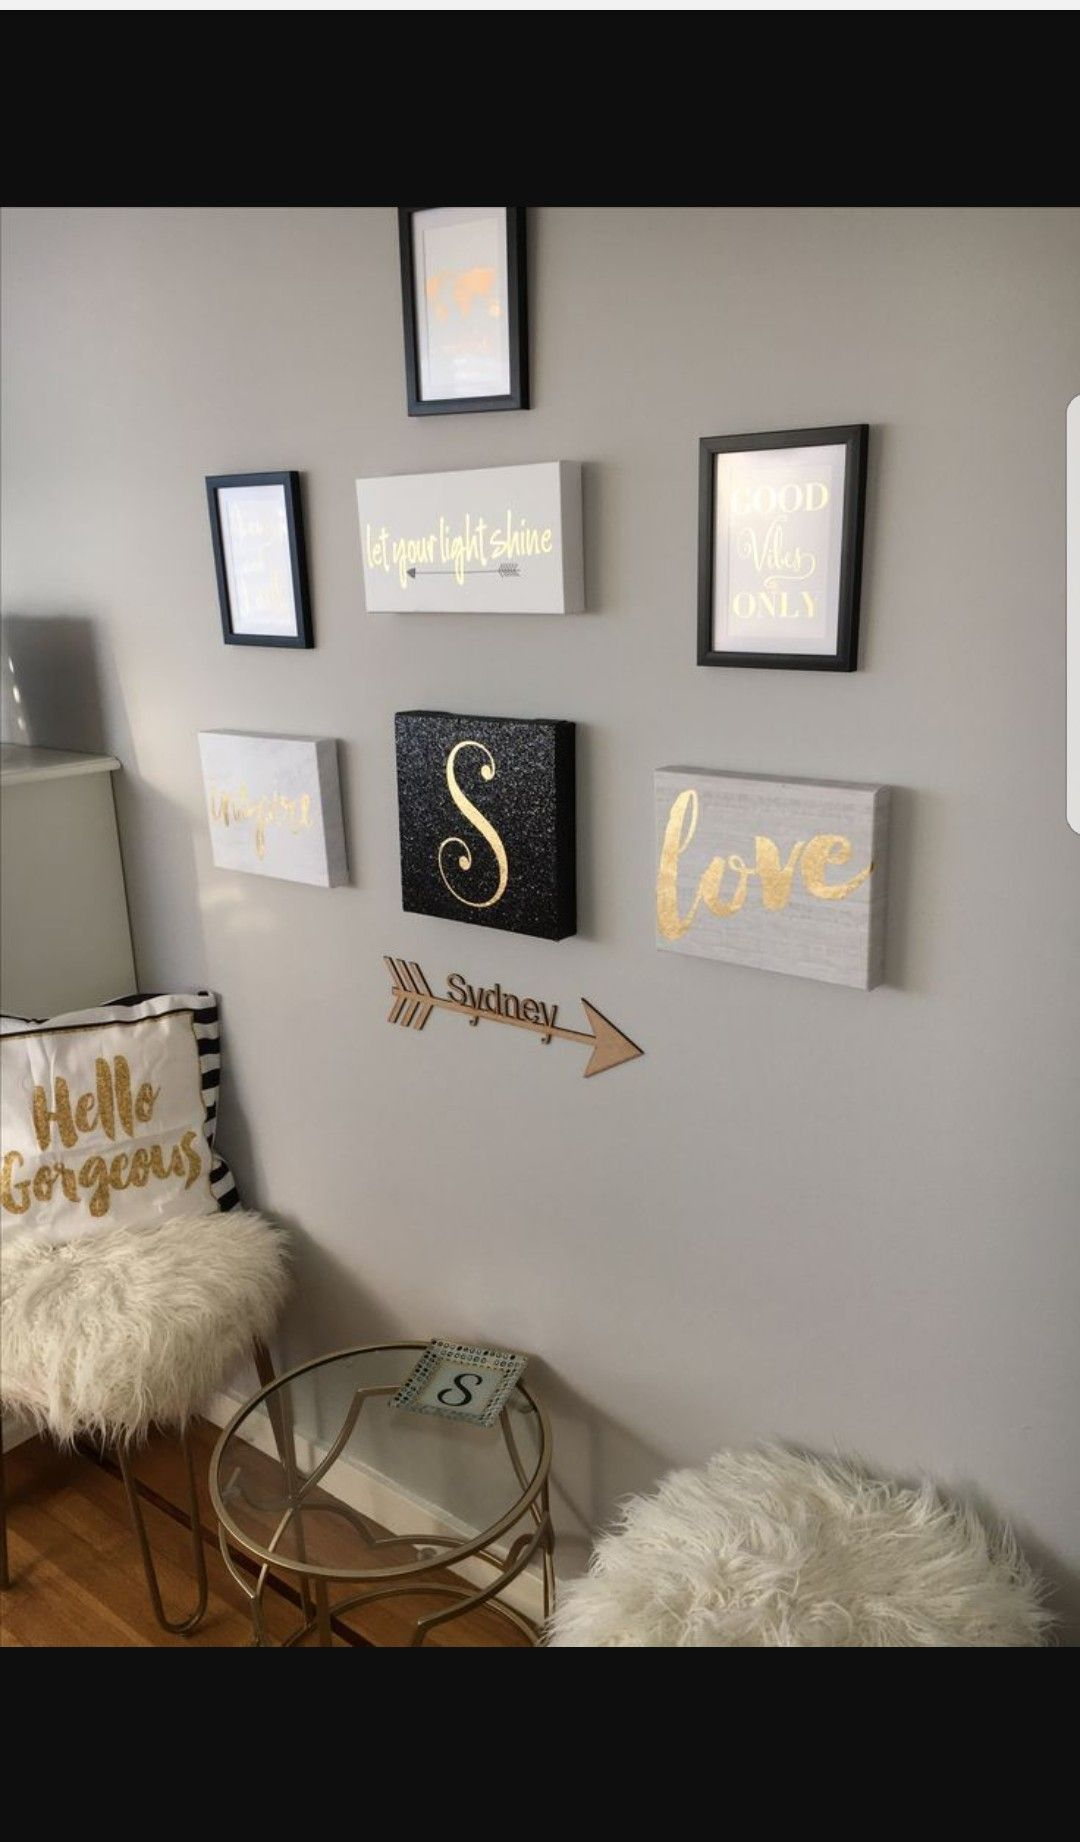 Cute wall art and notes for the hallway walkway lounge areas